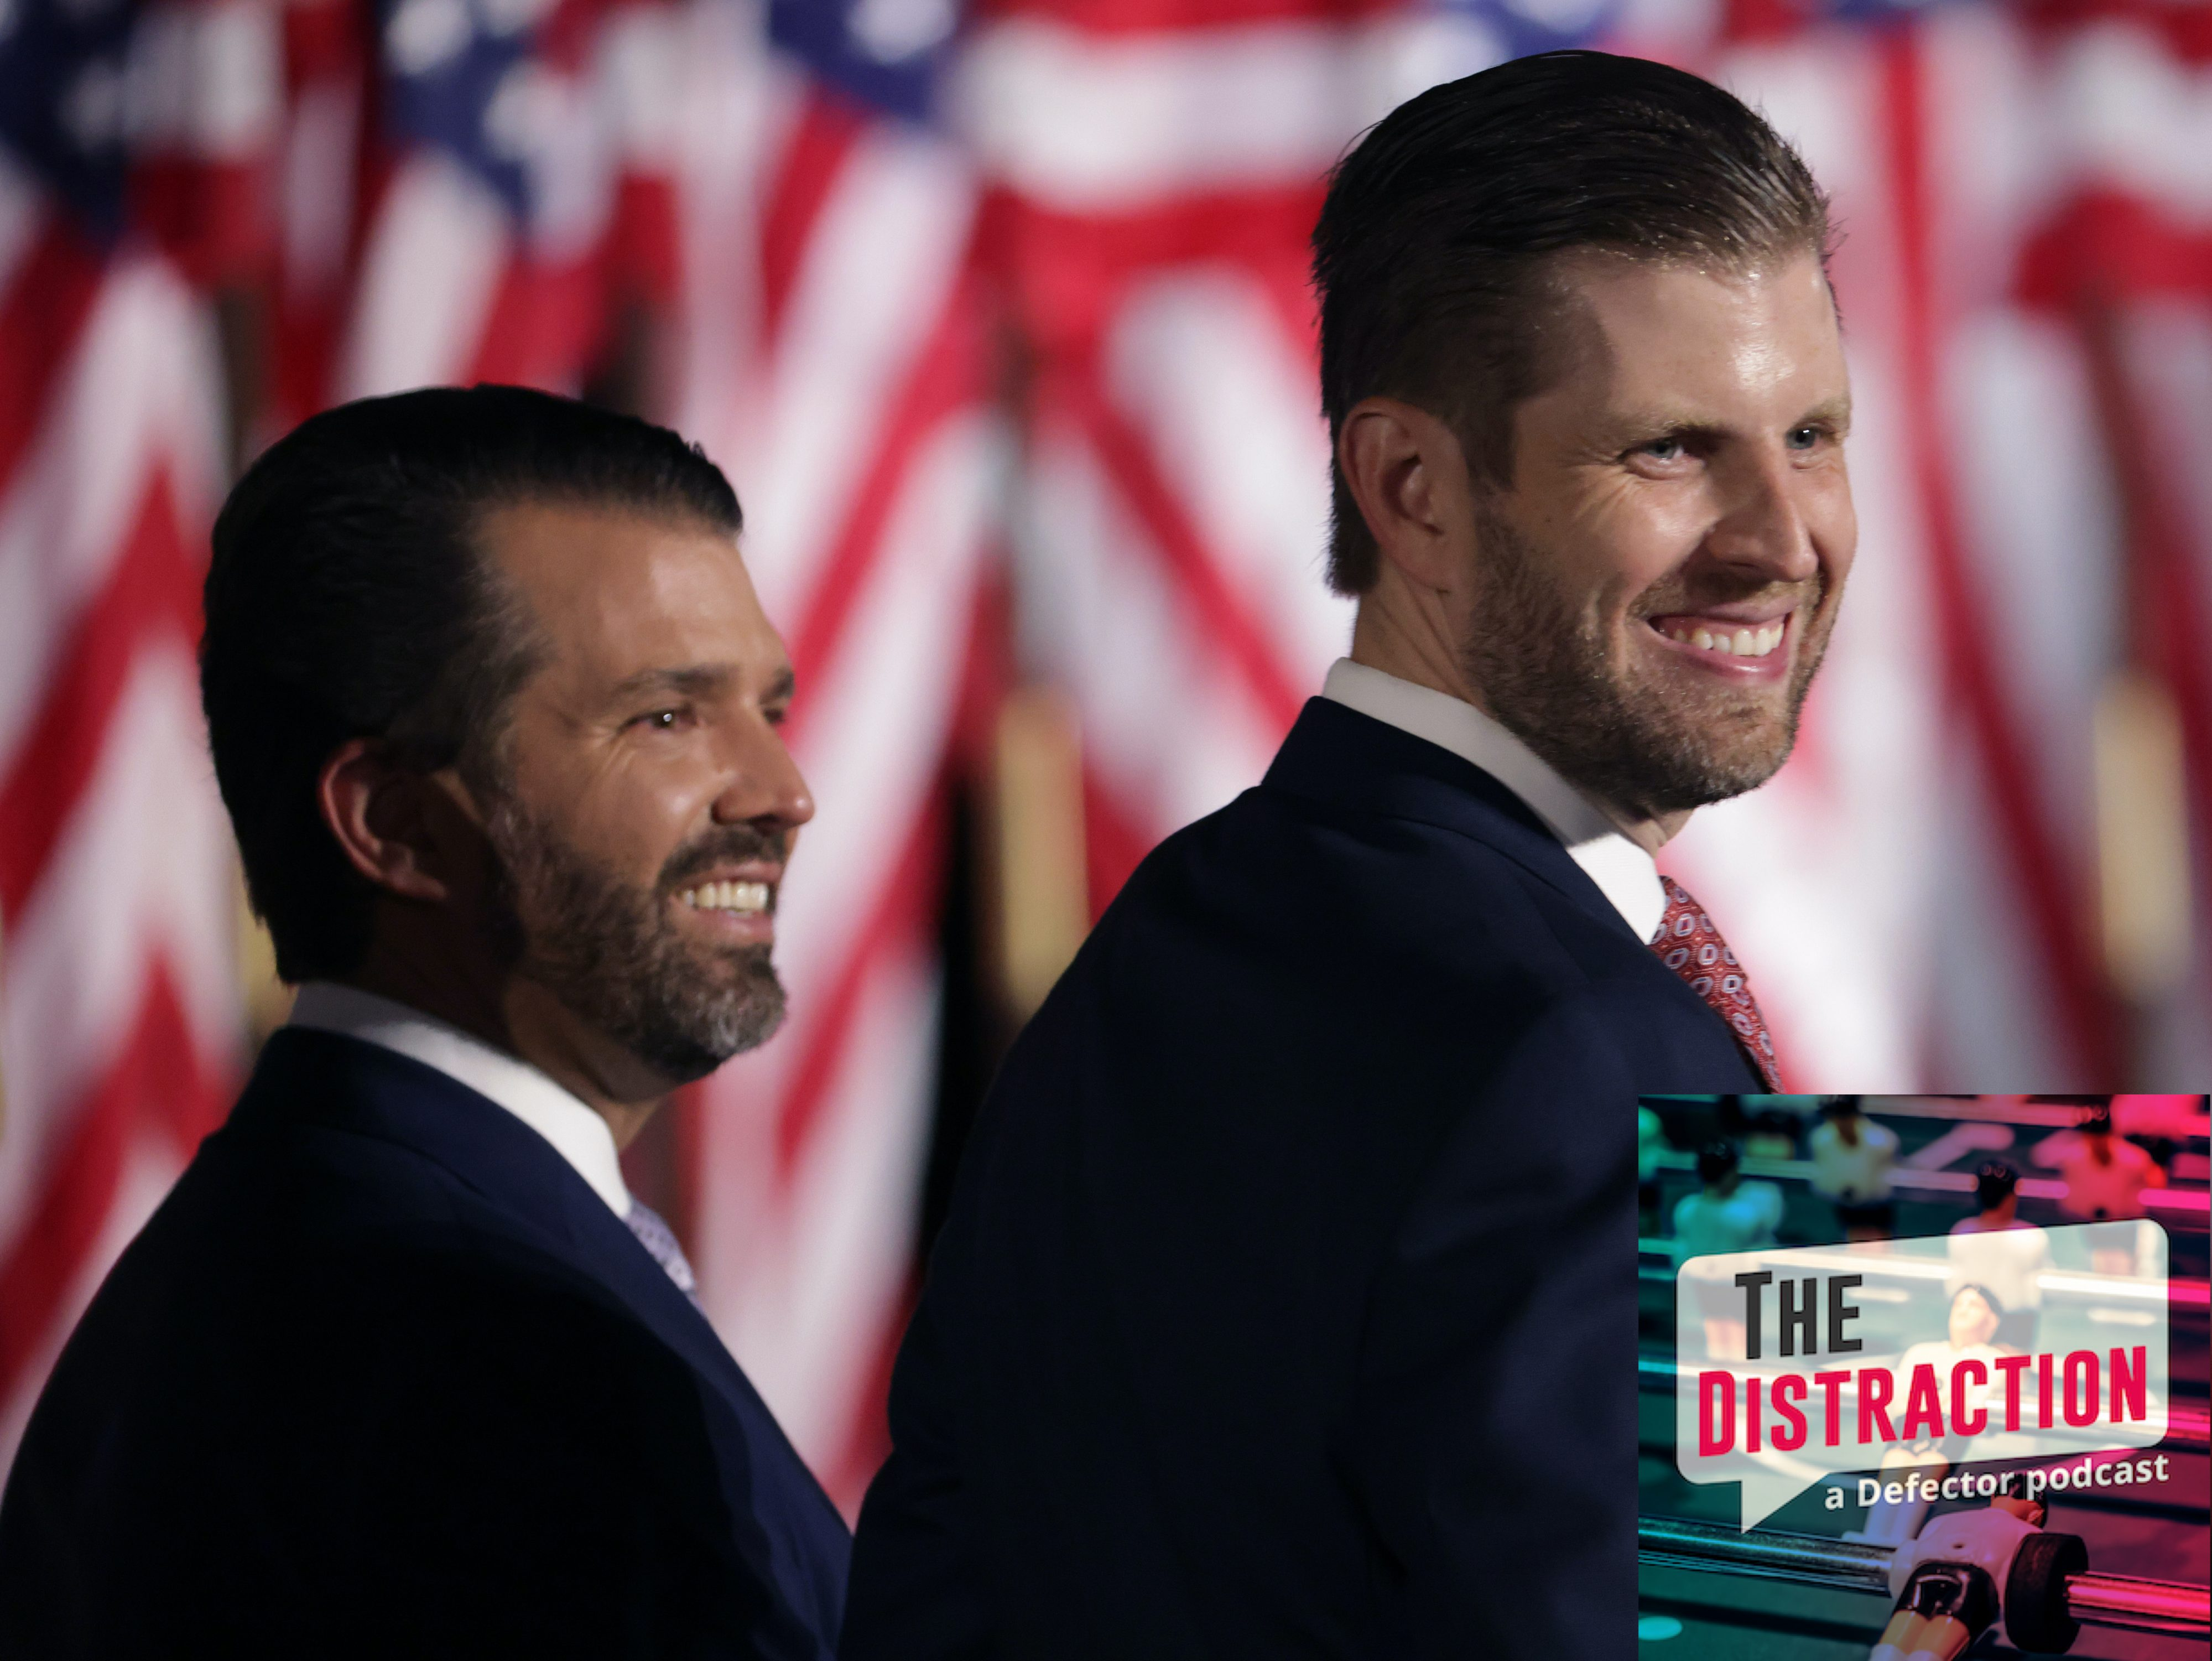 Donald Trump Jr. and Eric Trump at the 2020 GOP Convention, looking great.